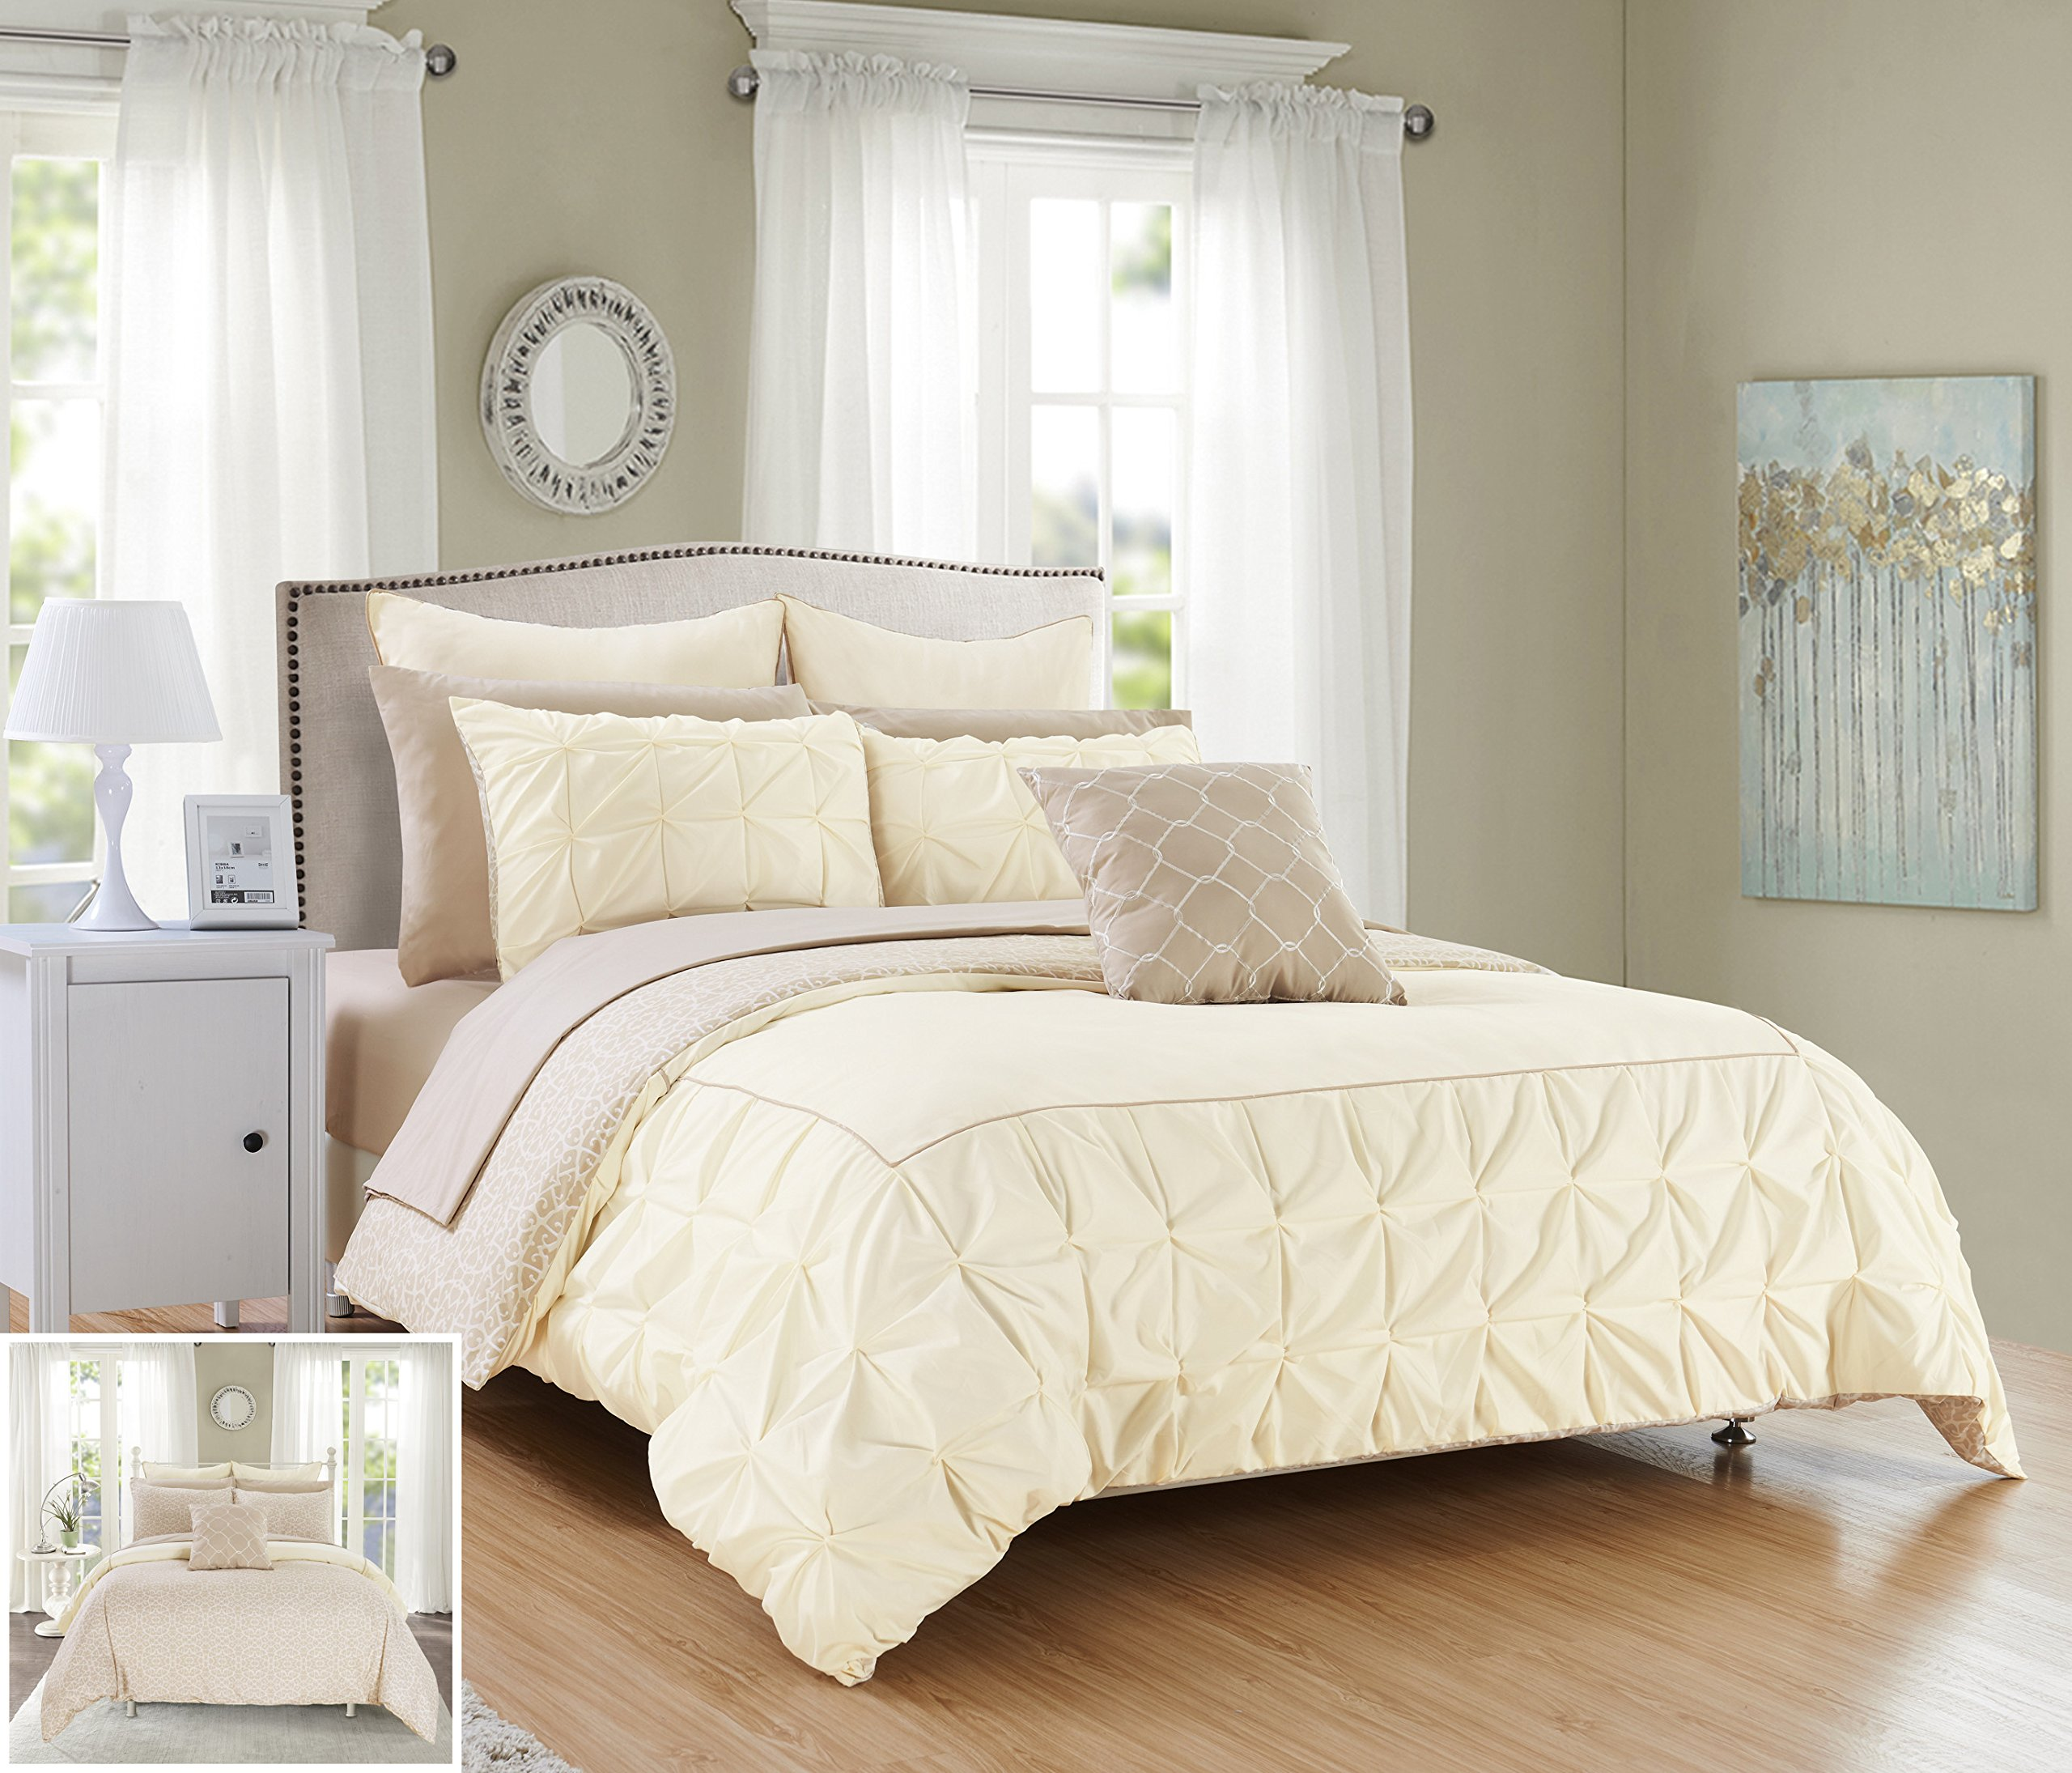 Chic Home 10 Piece Assent Ruffled pinch pleat border with piping detail, REVERSIBLE contemporary printed pattern King Bed In a Bag Comforter Set Beige